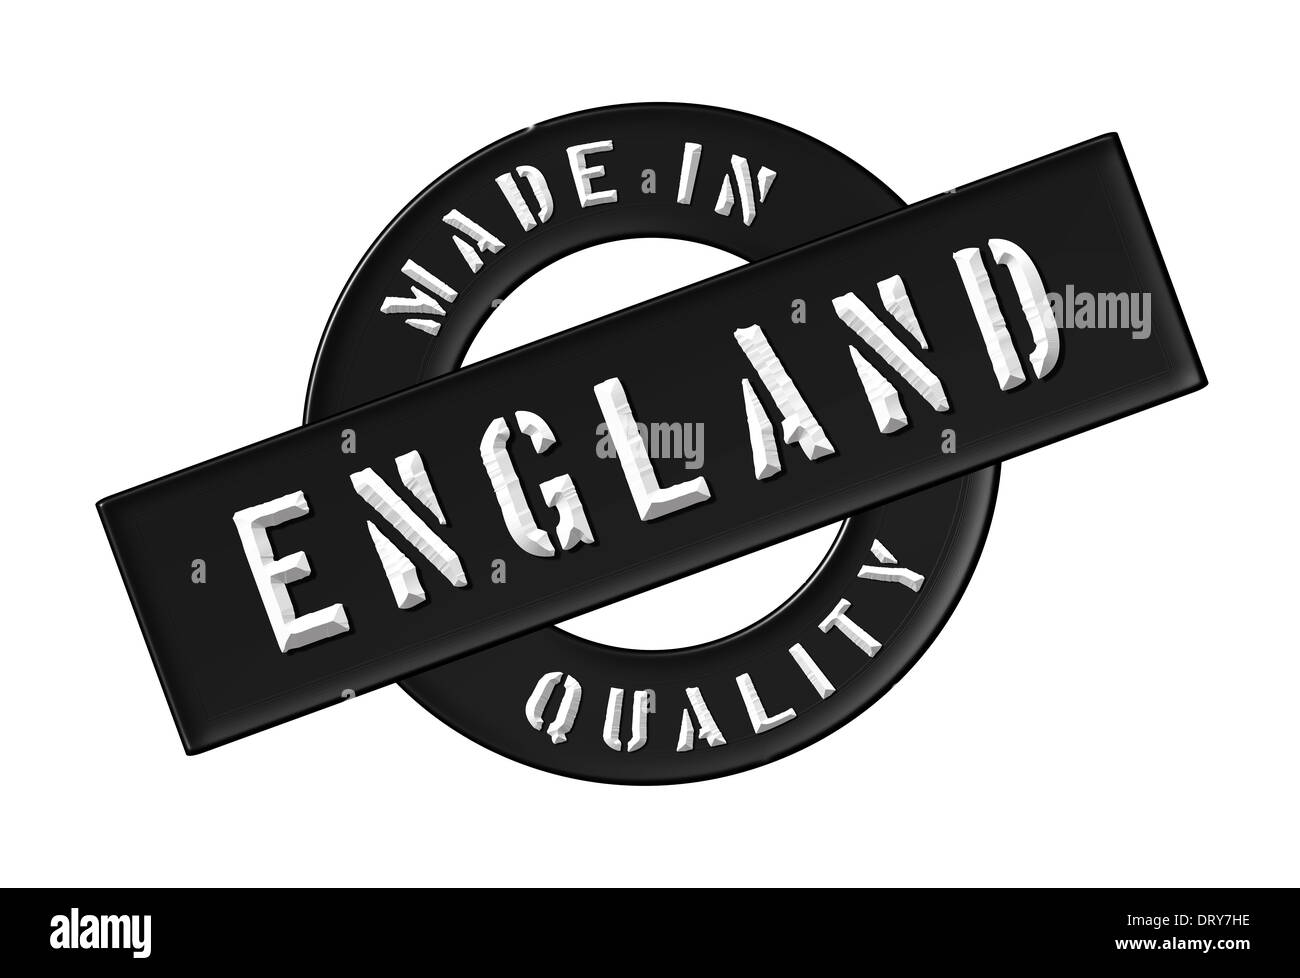 Made in England - Stock Image